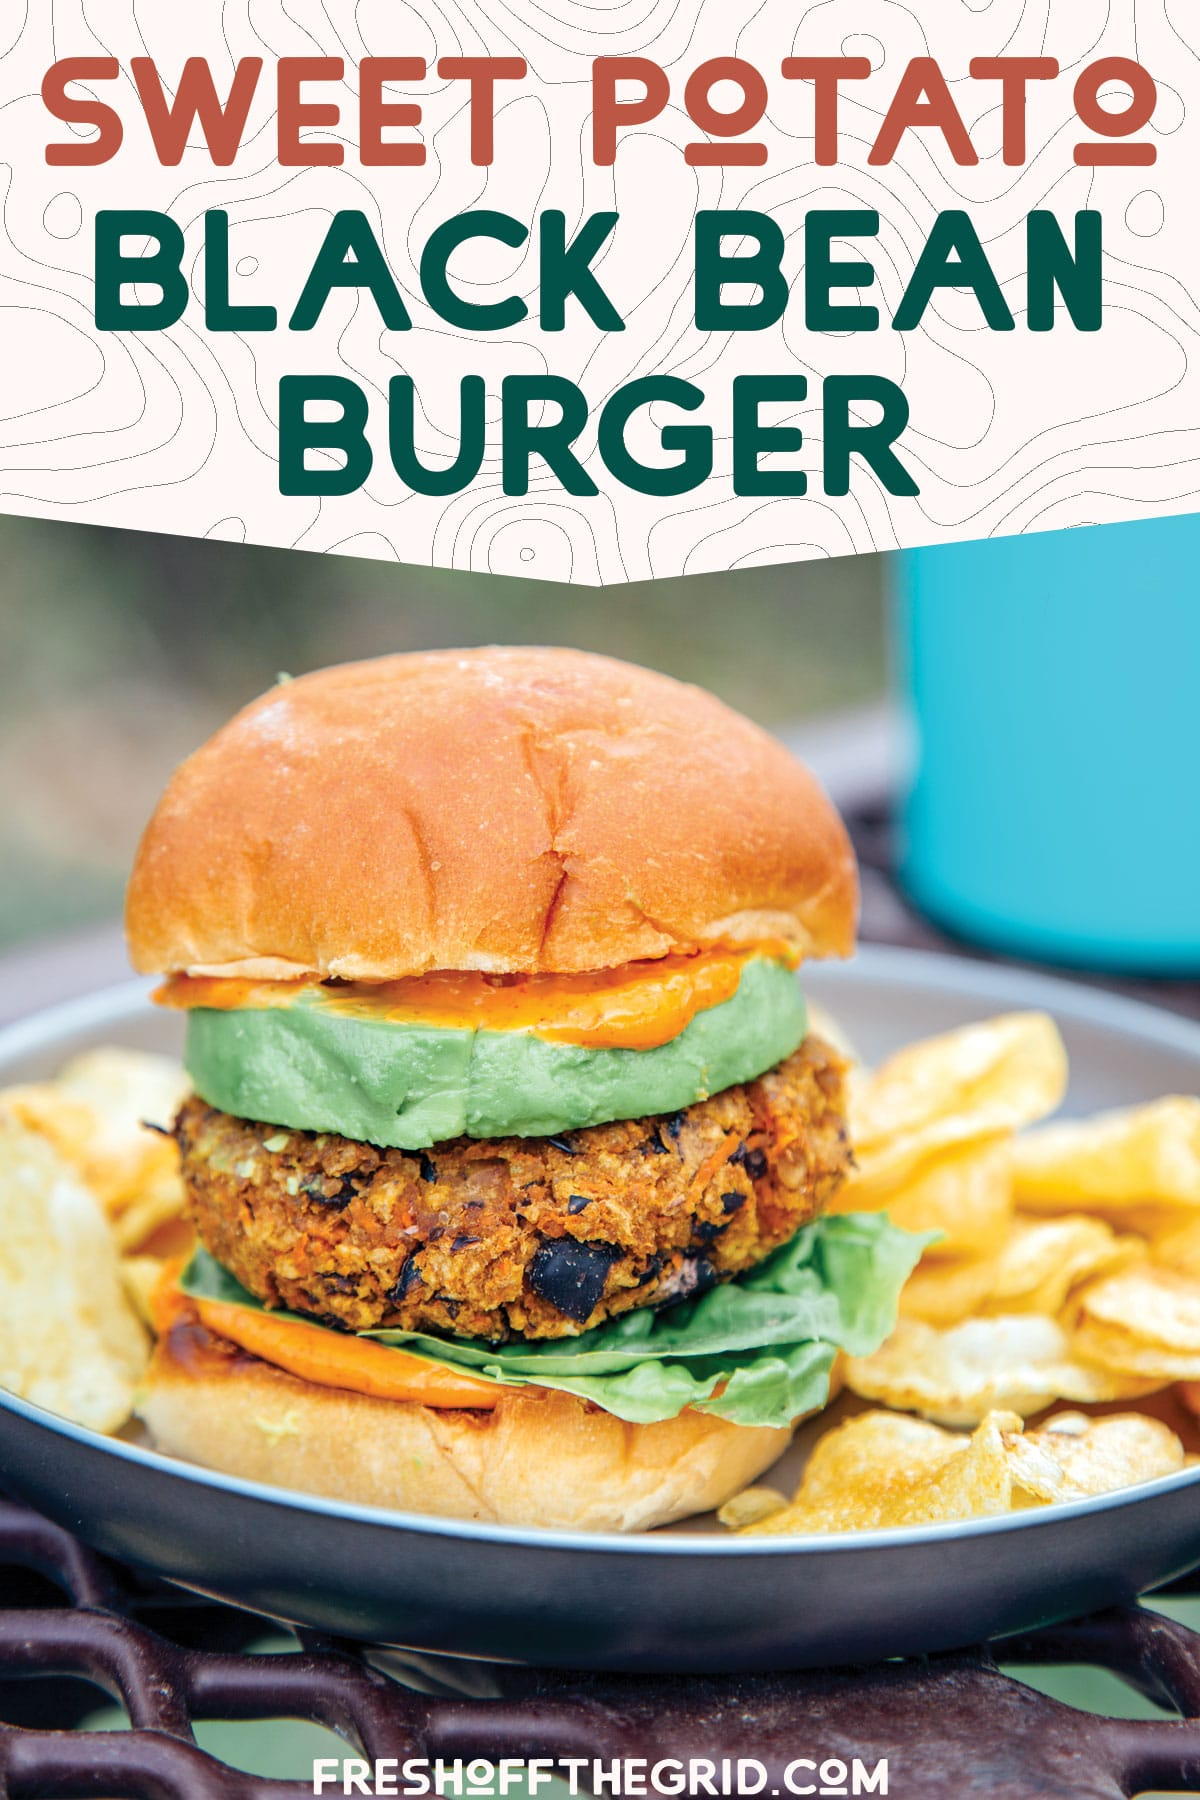 These vegetarian black bean burgers are packed with black beans, sweet potatoes, and spices for a super flavorful and healthy veggie burger recipe perfect for camping trips, tailgating, or an easy weeknight meal at home. via @freshoffthegrid